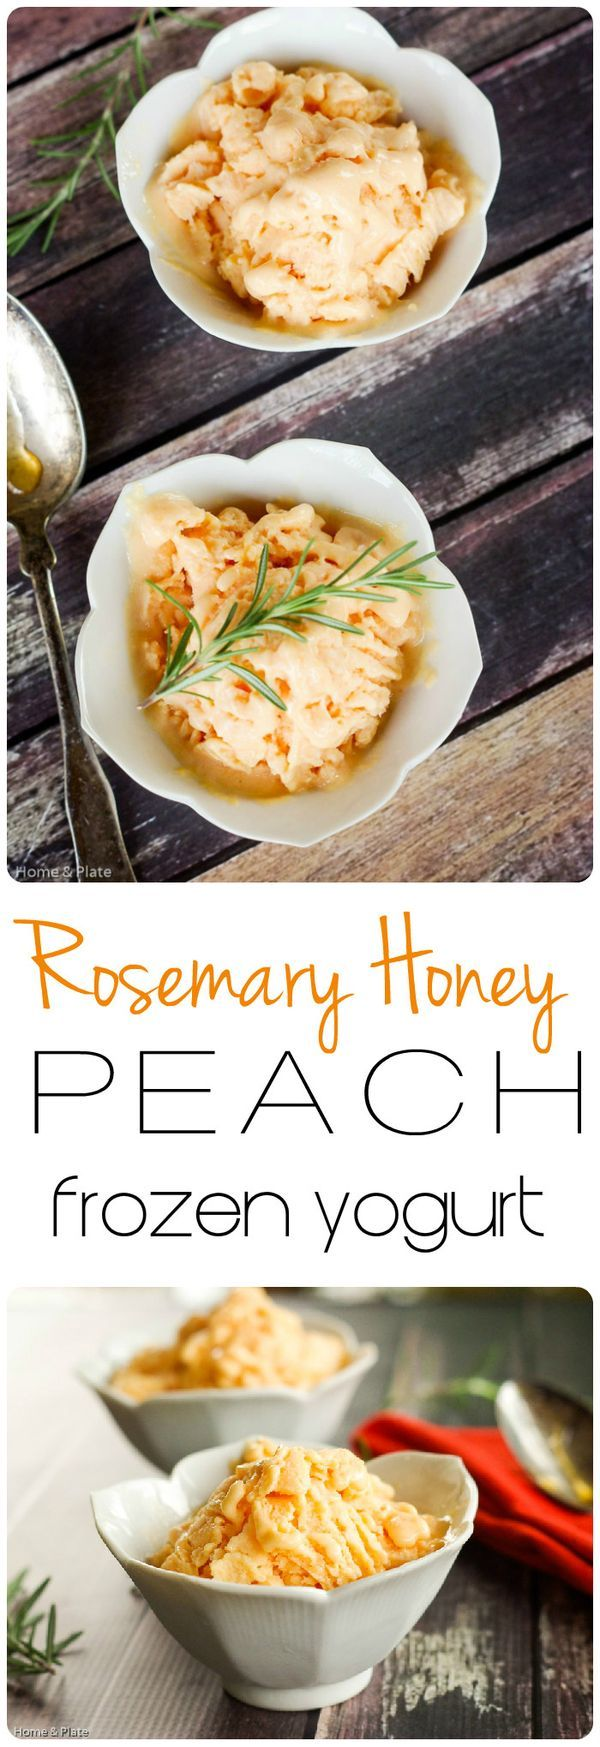 Rosemary Honey Peach Frozen Yogurt | Home & Plate | www.homeandplate.com | Rosemary and honey come together in this peach frozen yogurt dessert. #icecream #dessert #healthy